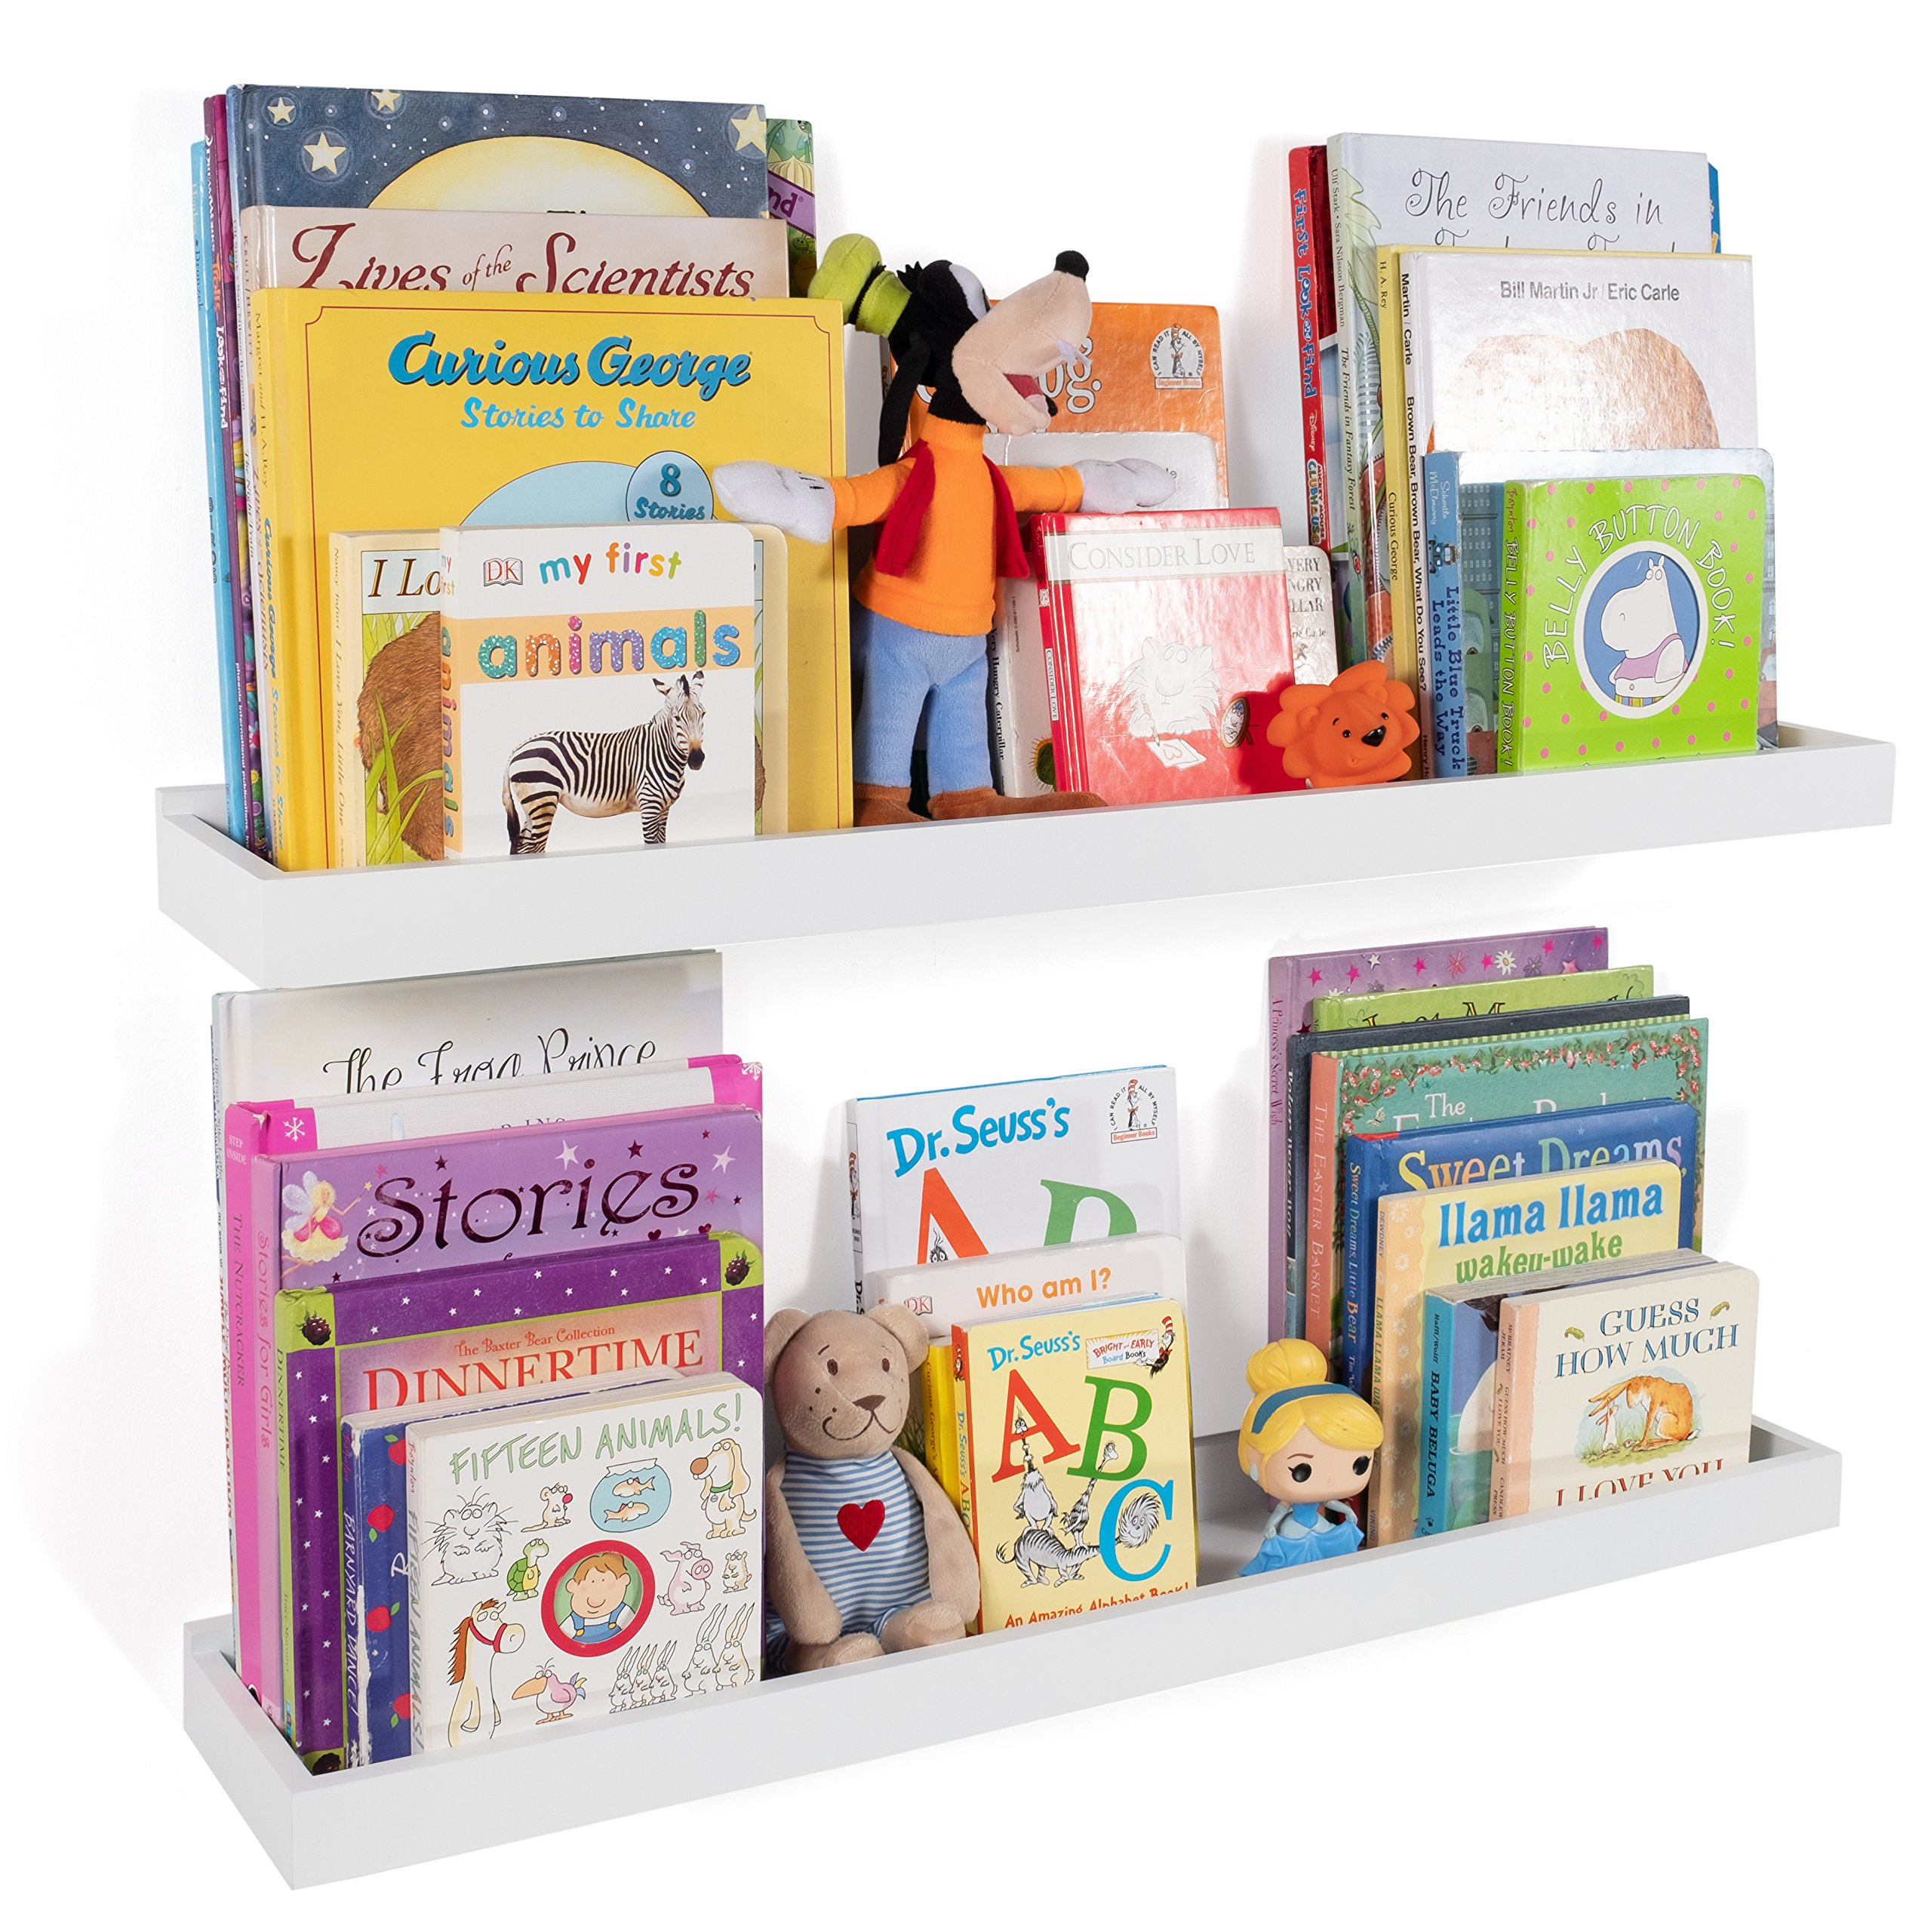 Details About Wallniture Nursery Room Decor - Kid's Room Floating Wall  Shelves - 31 Inch